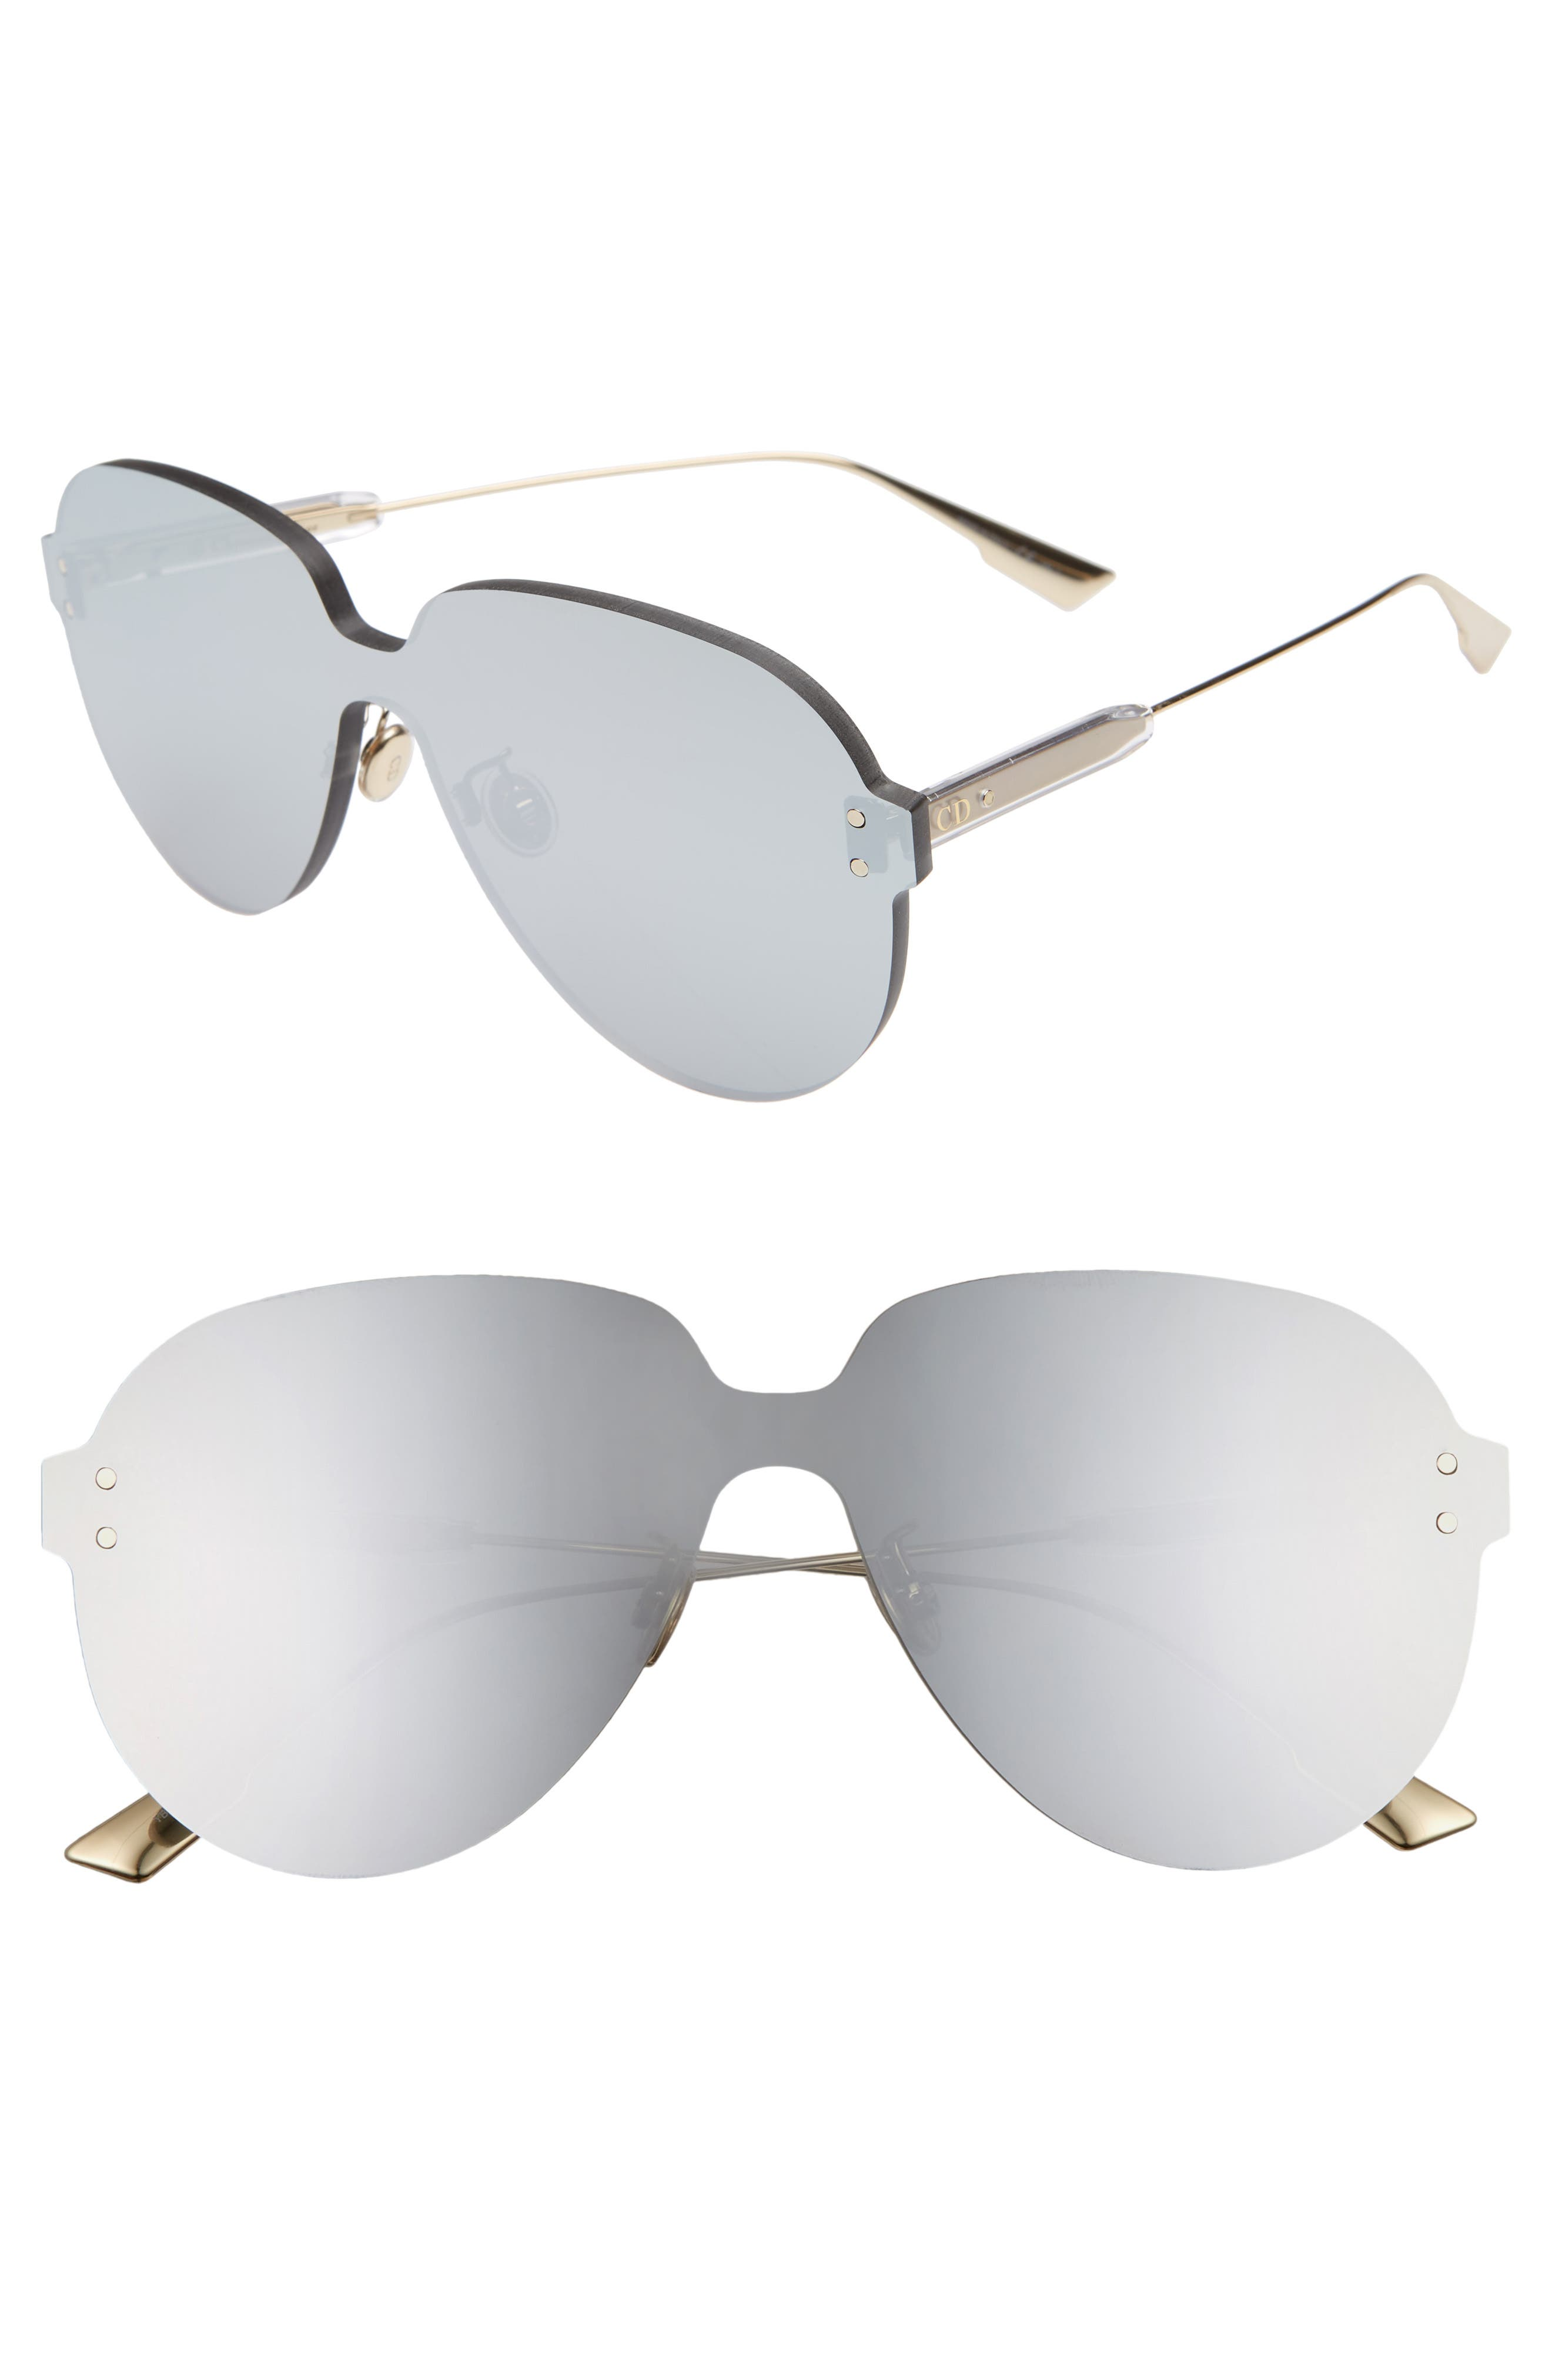 Christian Dior Quake3 14m Rimless Pilot Shield Sunglasses - Silver